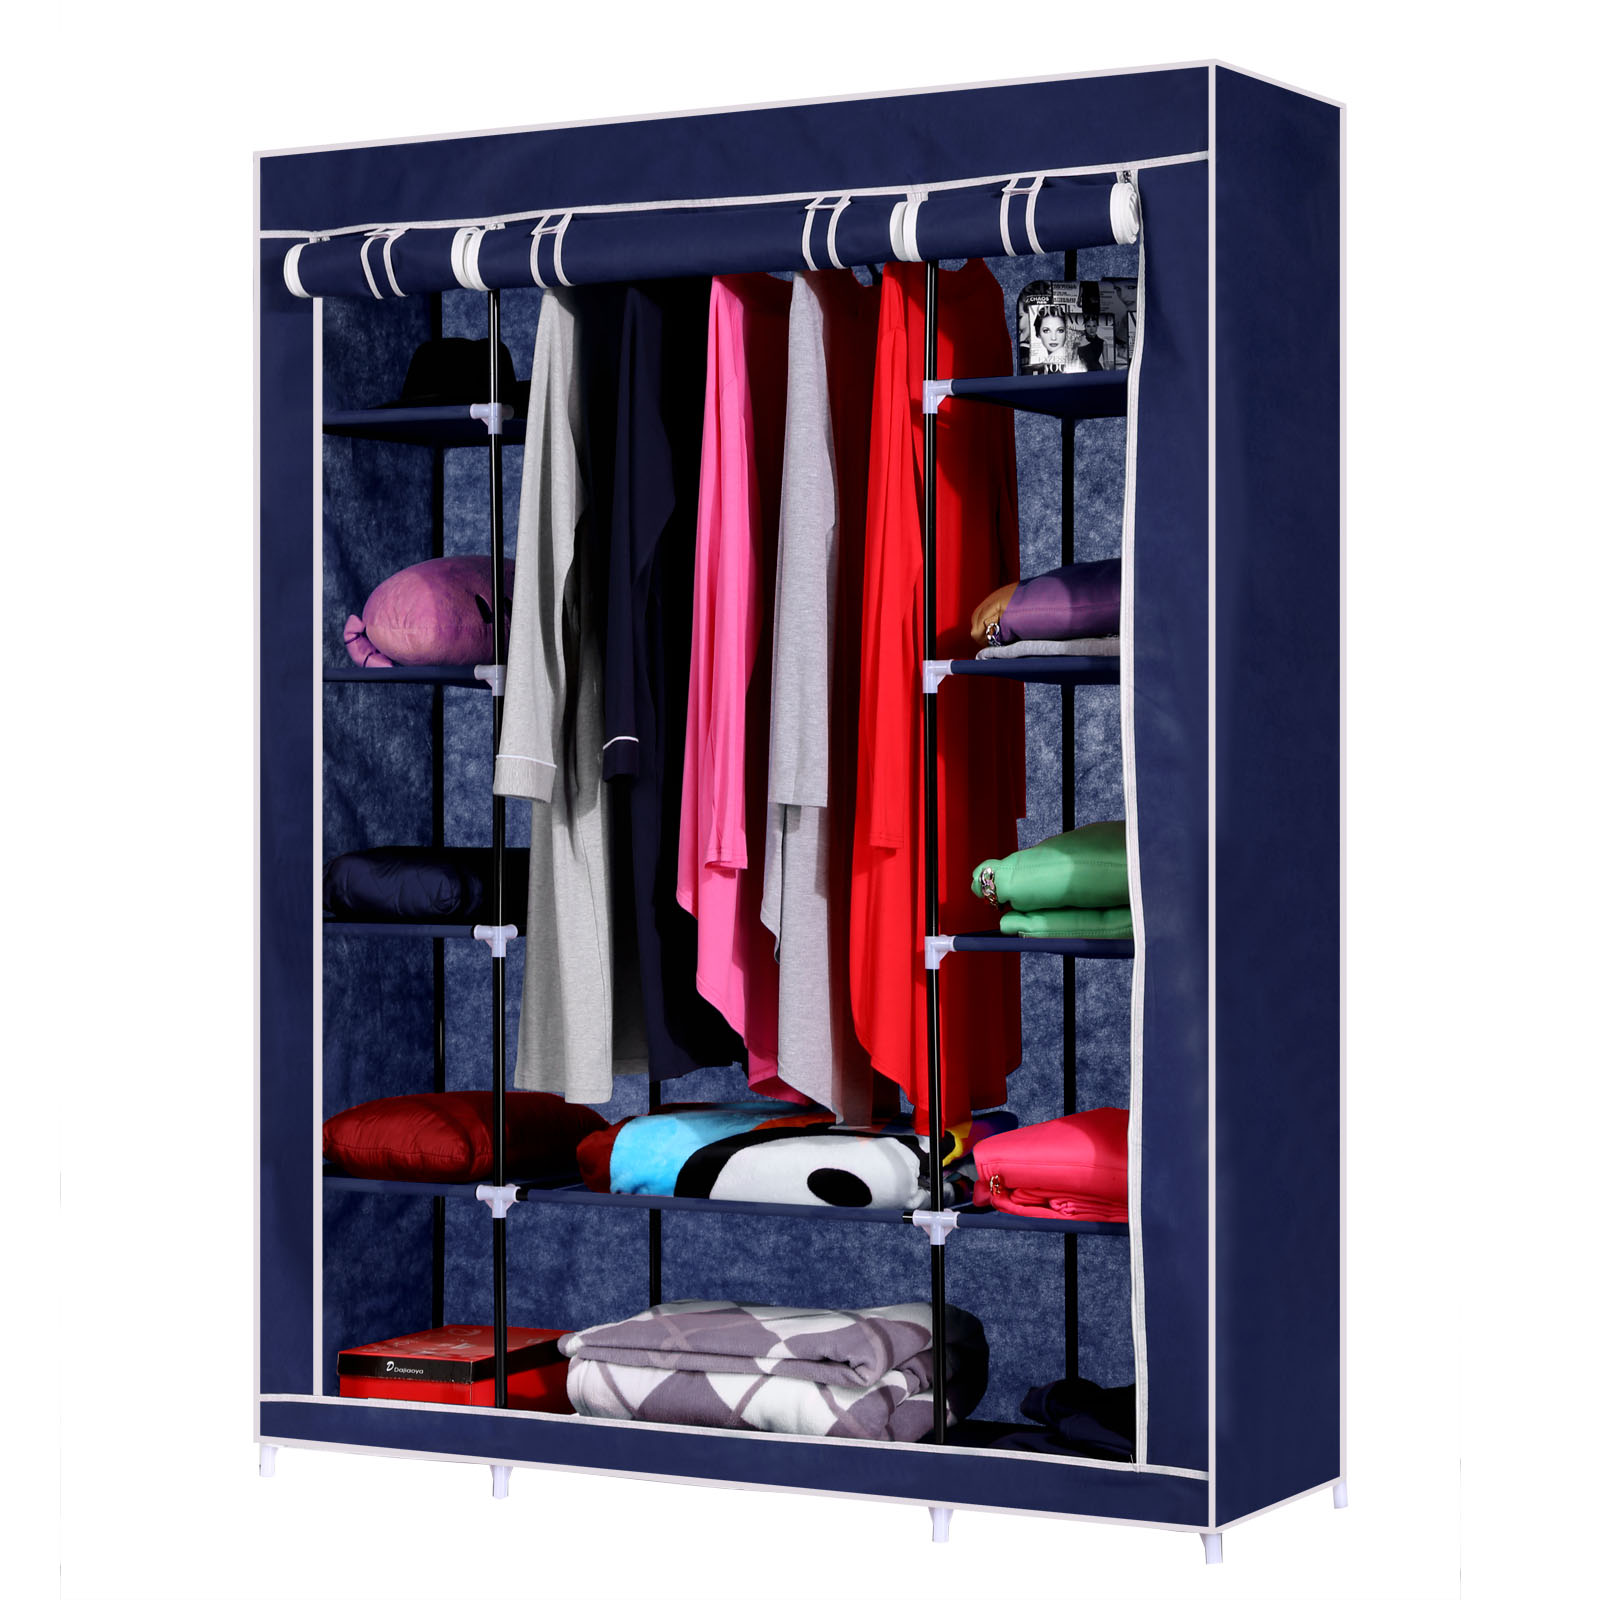 Compare prices on fabric folding door online shopping buy low - Compare Prices On Furniture China Cabinet Online Shopping